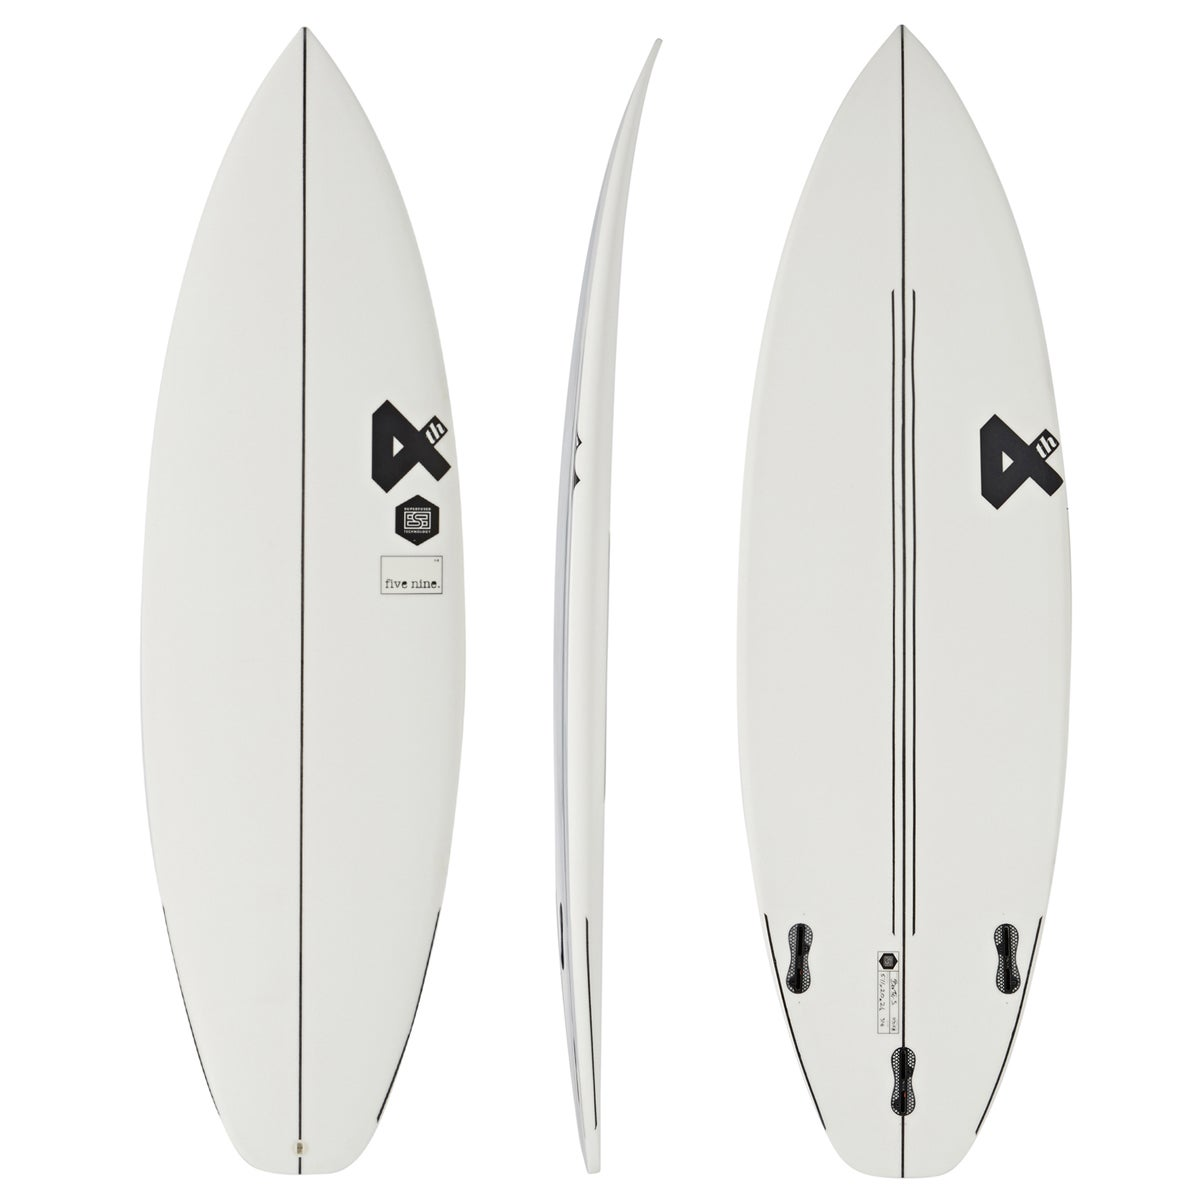 Fourth Surfboards Five Nine ESE Construction FCS II Thruster Surfboard - White Black